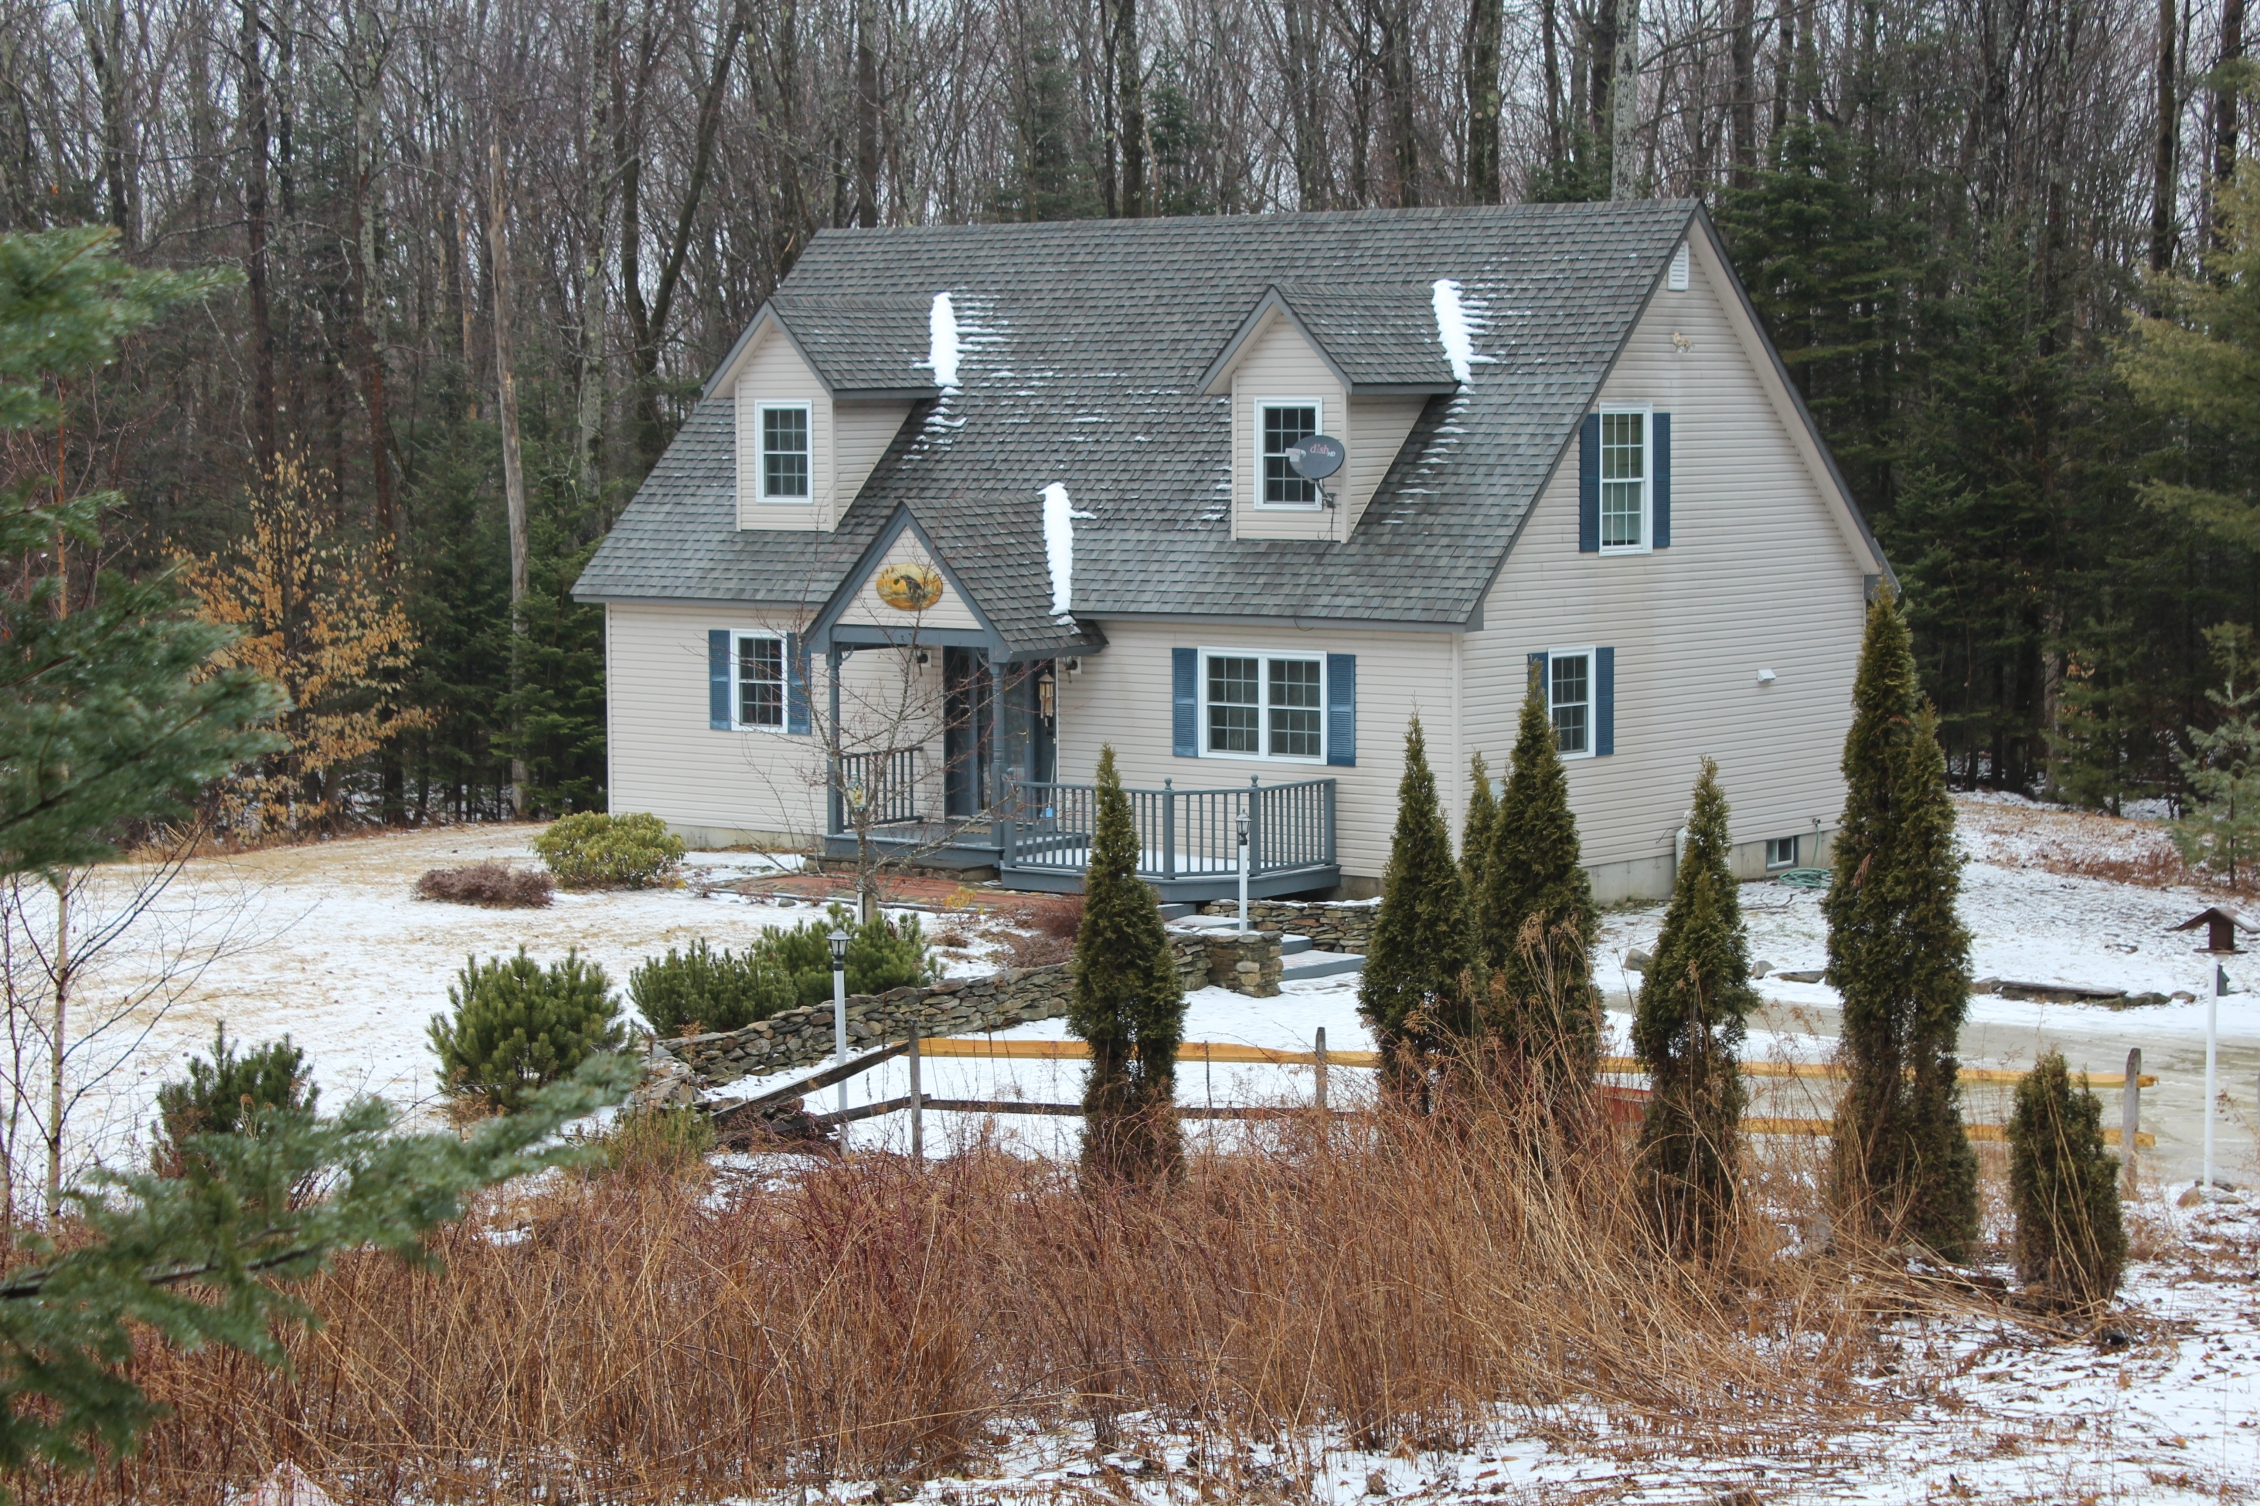 Single Family Home for Sale at 245 Teer Road, Mount Holly 245 Teer Rd Mount Holly, Vermont, 05730 United States